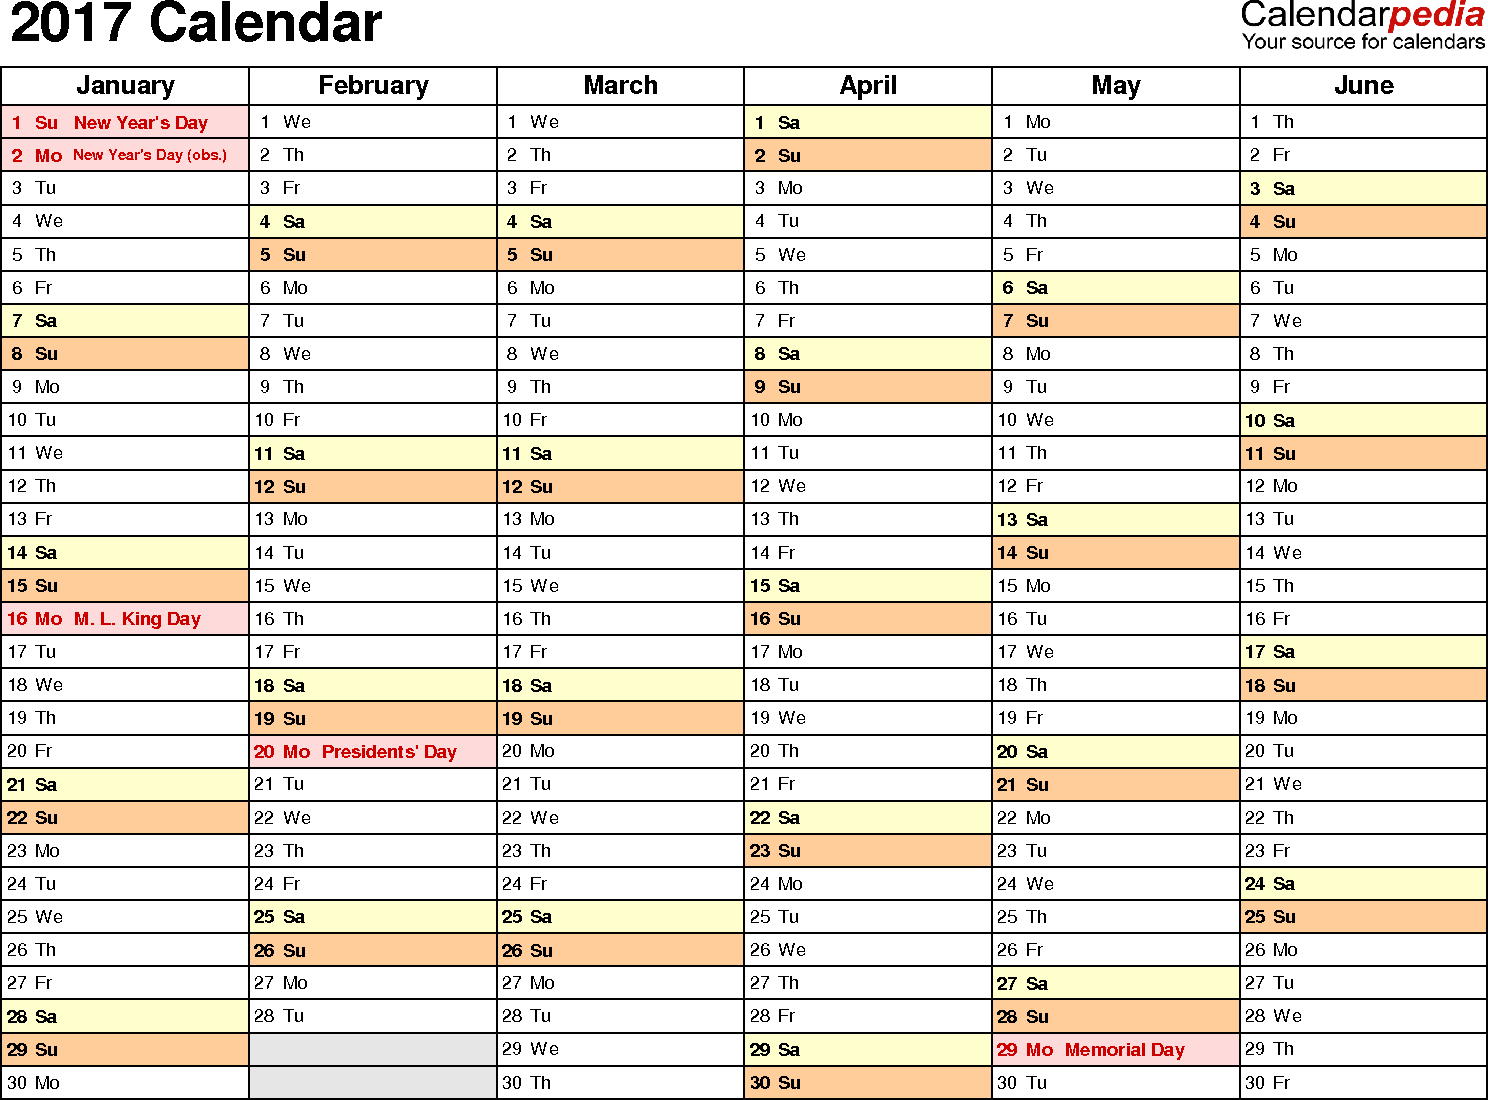 Ediblewildsus  Ravishing  Calendar  Download  Free Printable Excel Templates Xls With Inspiring Template   Calendar For Excel Months Horizontally  Pages Landscape Orientation With Divine Using Excel To Solve Equations Also Write A Macro In Excel In Addition Resource Planning Spreadsheet Excel And Current Date Function Excel As Well As Advanced Excel Tutorial  Additionally Swimlane Excel Template From Calendarpediacom With Ediblewildsus  Inspiring  Calendar  Download  Free Printable Excel Templates Xls With Divine Template   Calendar For Excel Months Horizontally  Pages Landscape Orientation And Ravishing Using Excel To Solve Equations Also Write A Macro In Excel In Addition Resource Planning Spreadsheet Excel From Calendarpediacom